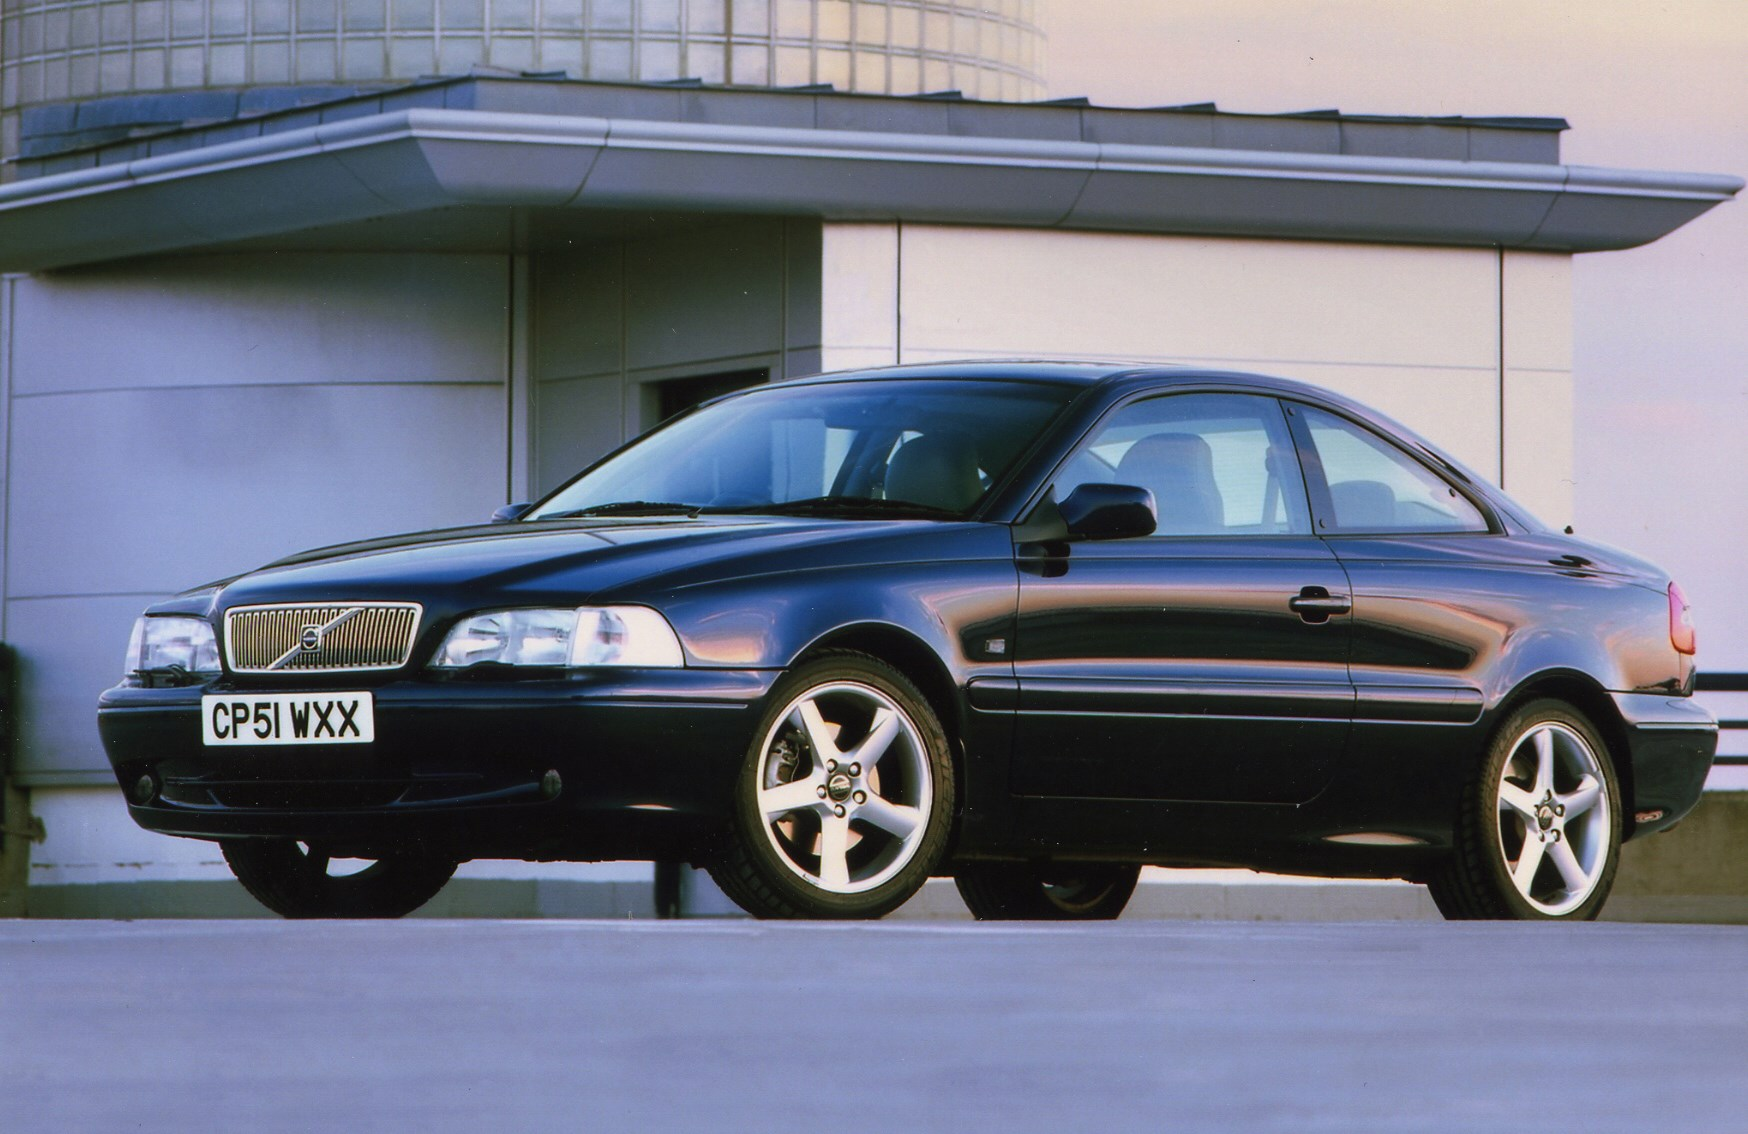 Volvo C70 Coupé (1997 - 2002) Photos | Parkers